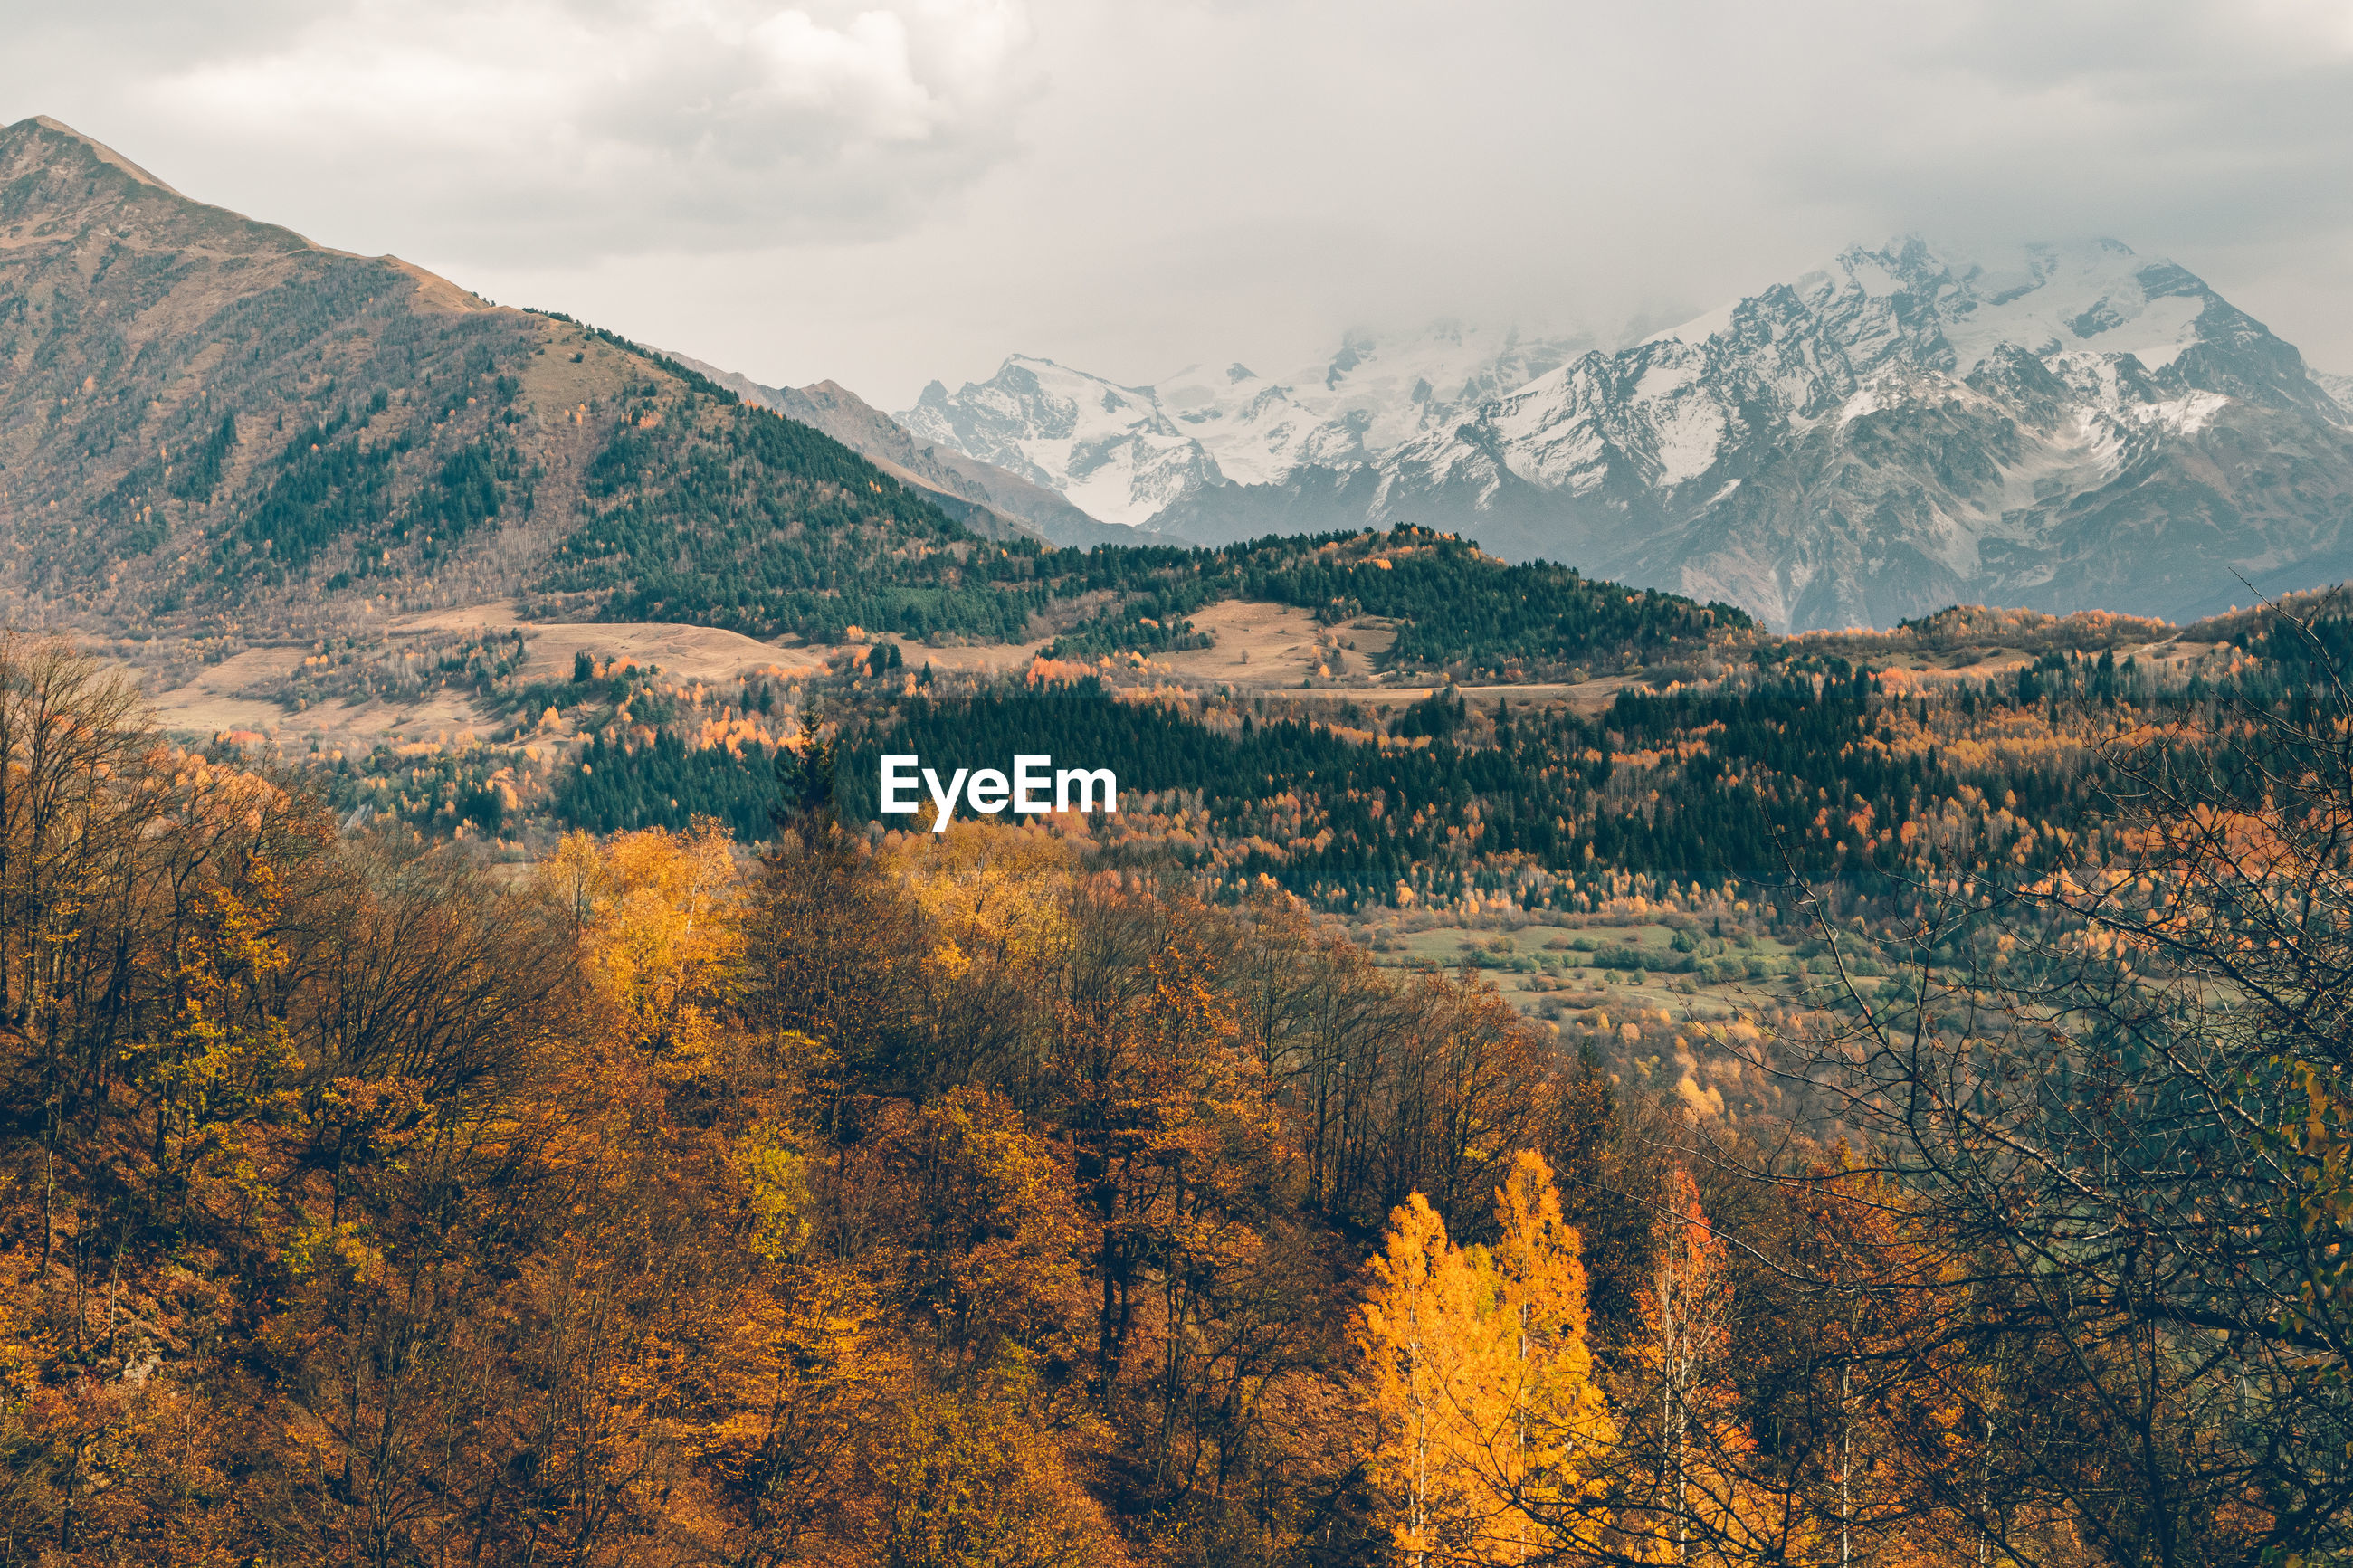 Beautiful autumn mountain landscape photo with yellow and orange color.